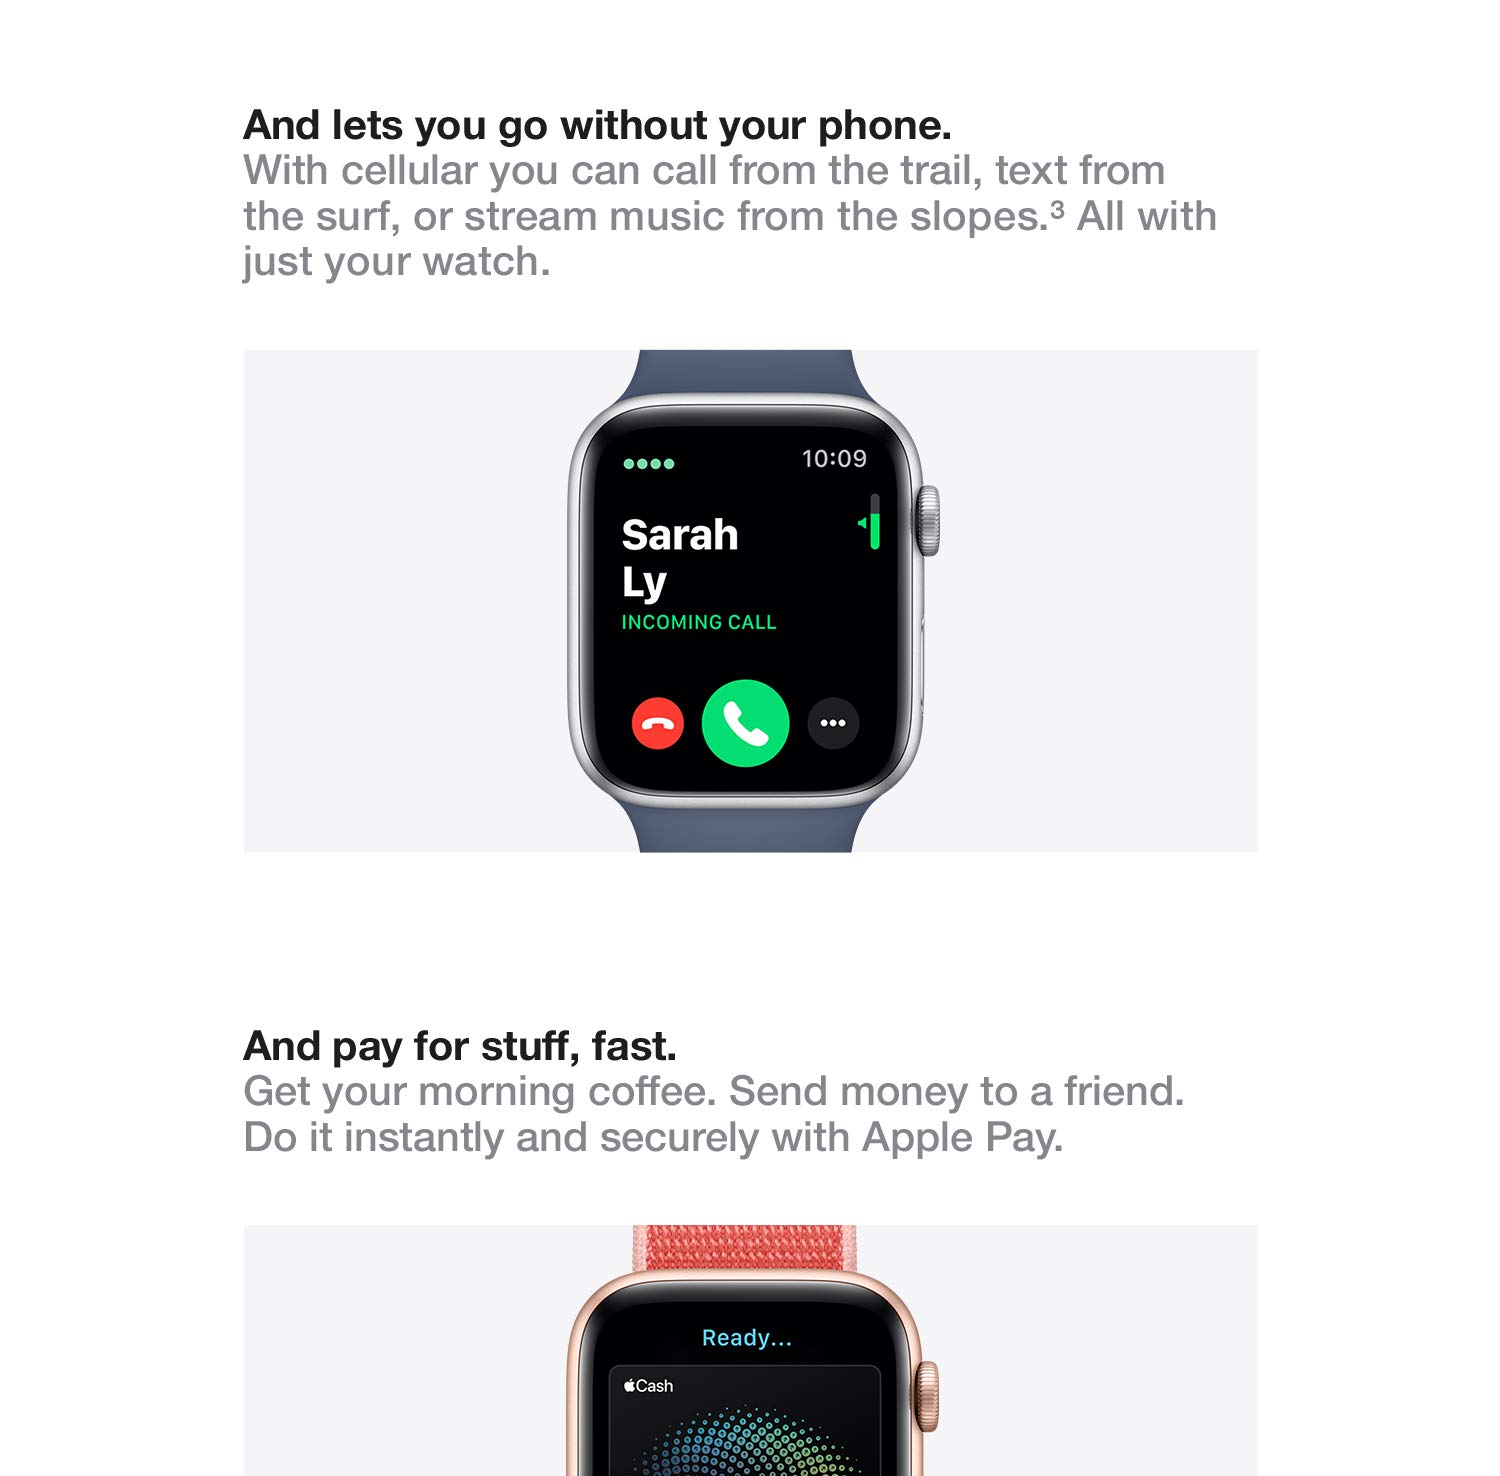 And lets you go without your phone. With cellular you can call from the trail, text from the surf, or stream music from the slopes. All with just your watch. And pay for stuff, fast. Get your morning coffee. Send money to a friend. Do it instantly and securely with Apple Pay.